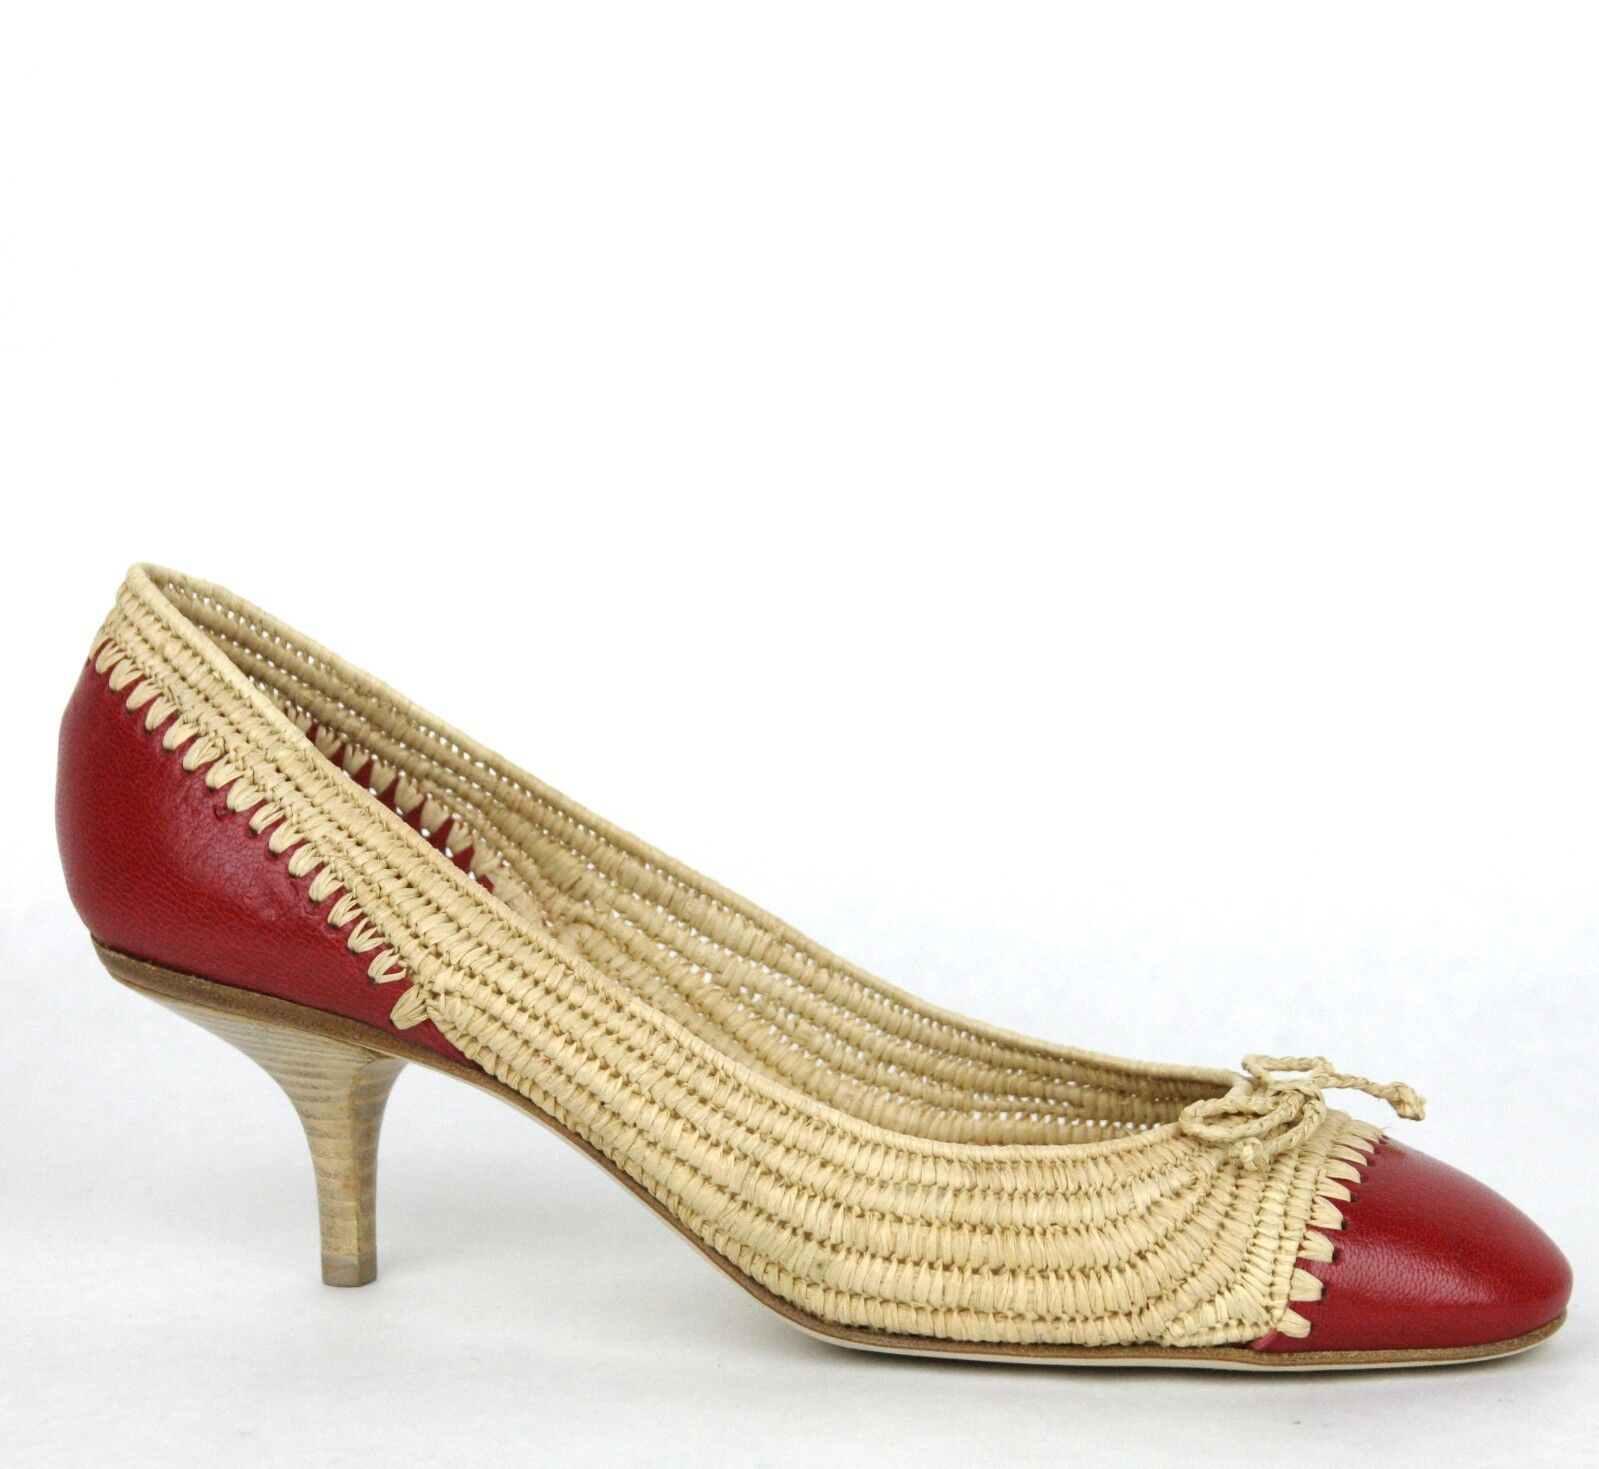 880 New Bottega Veneta Straw Leather Heel Pump w Bow Beige Red 338296 9867